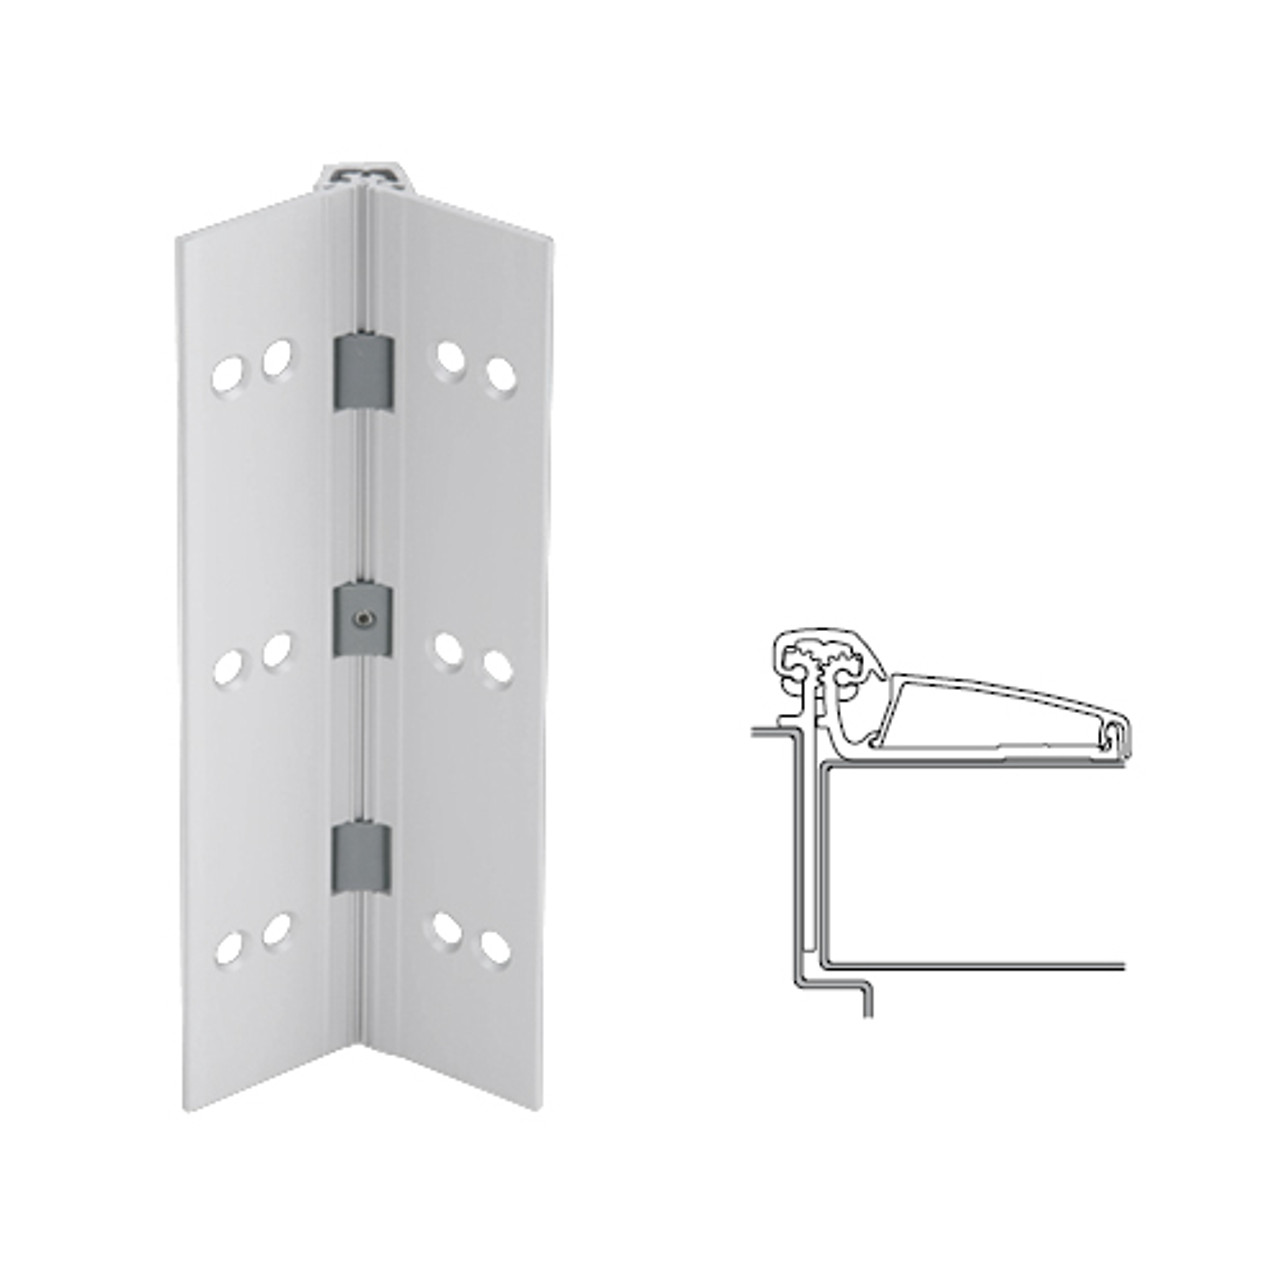 046XY-US28-120-SECHM IVES Adjustable Half Surface Continuous Geared Hinges with Security Screws - Hex Pin Drive in Satin Aluminum